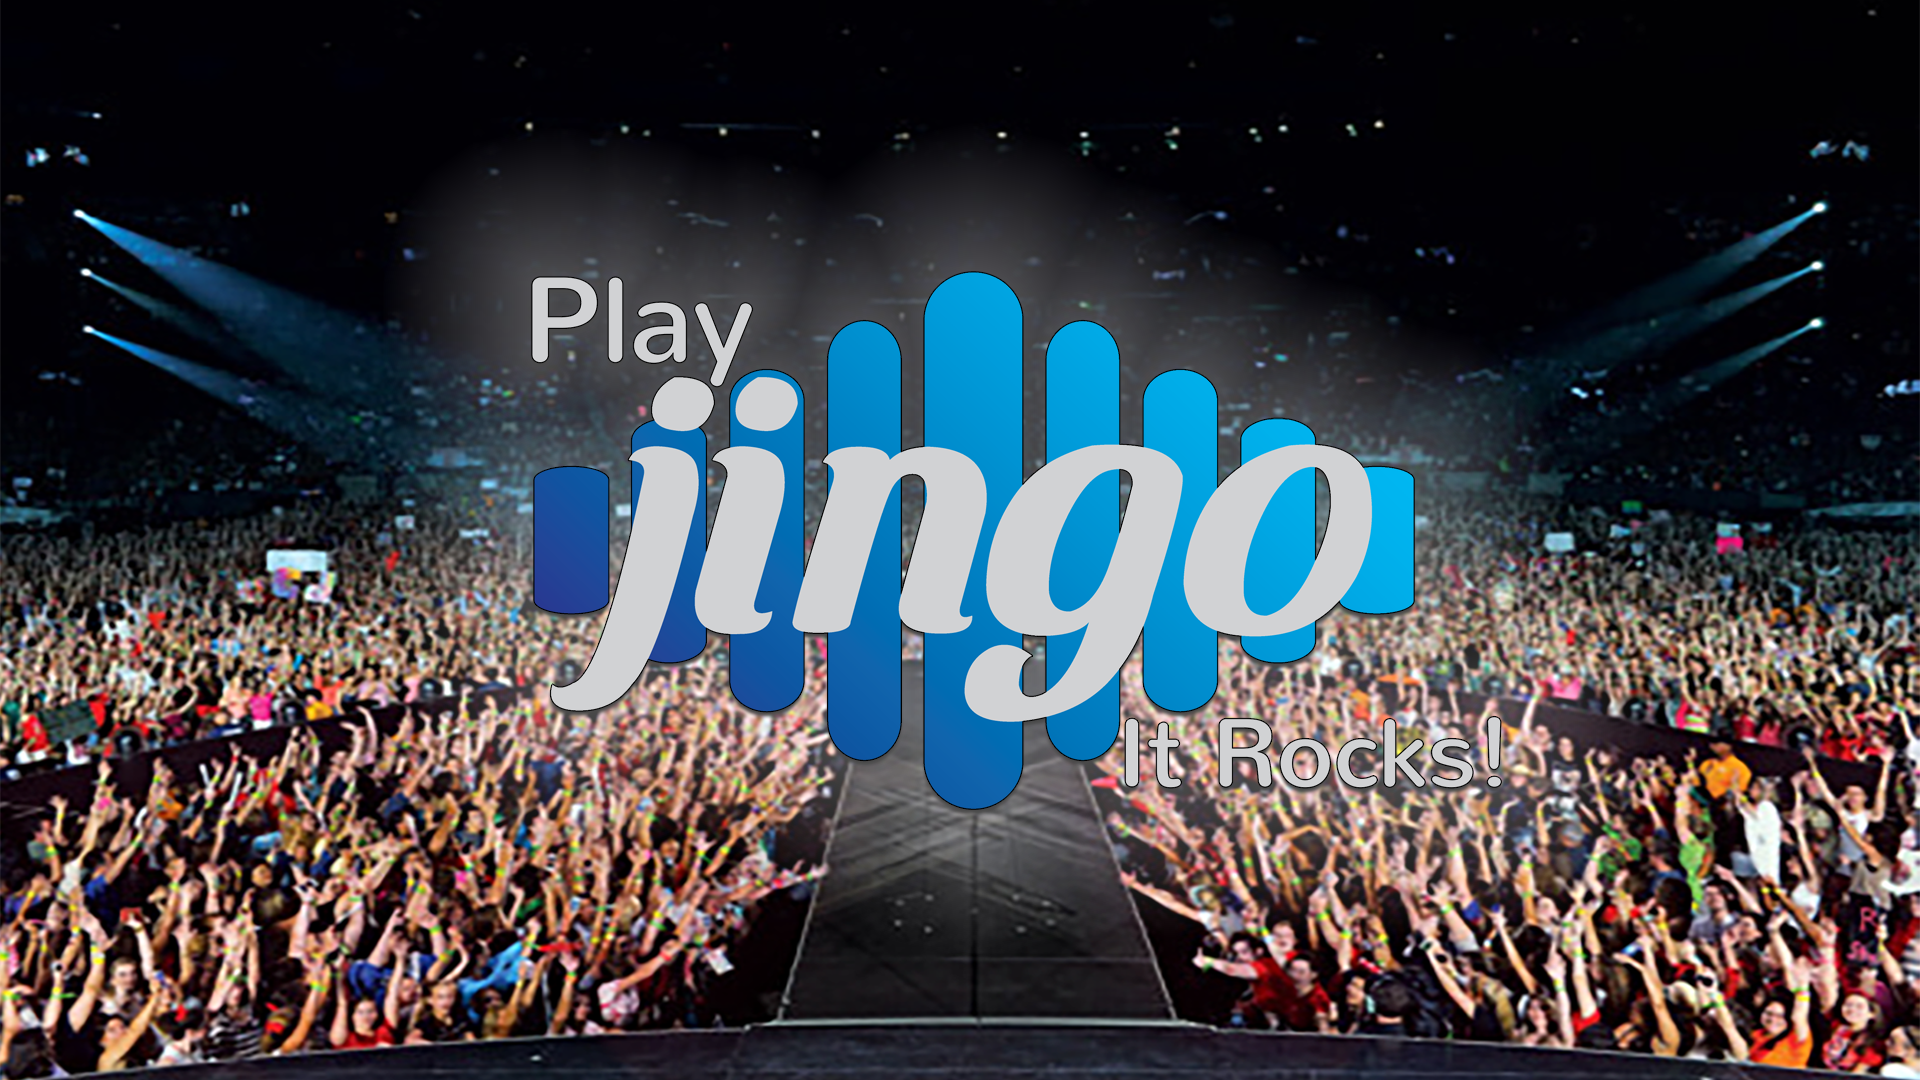 Jingo Rocks NZ's Pubs Bar with Bingo Beats